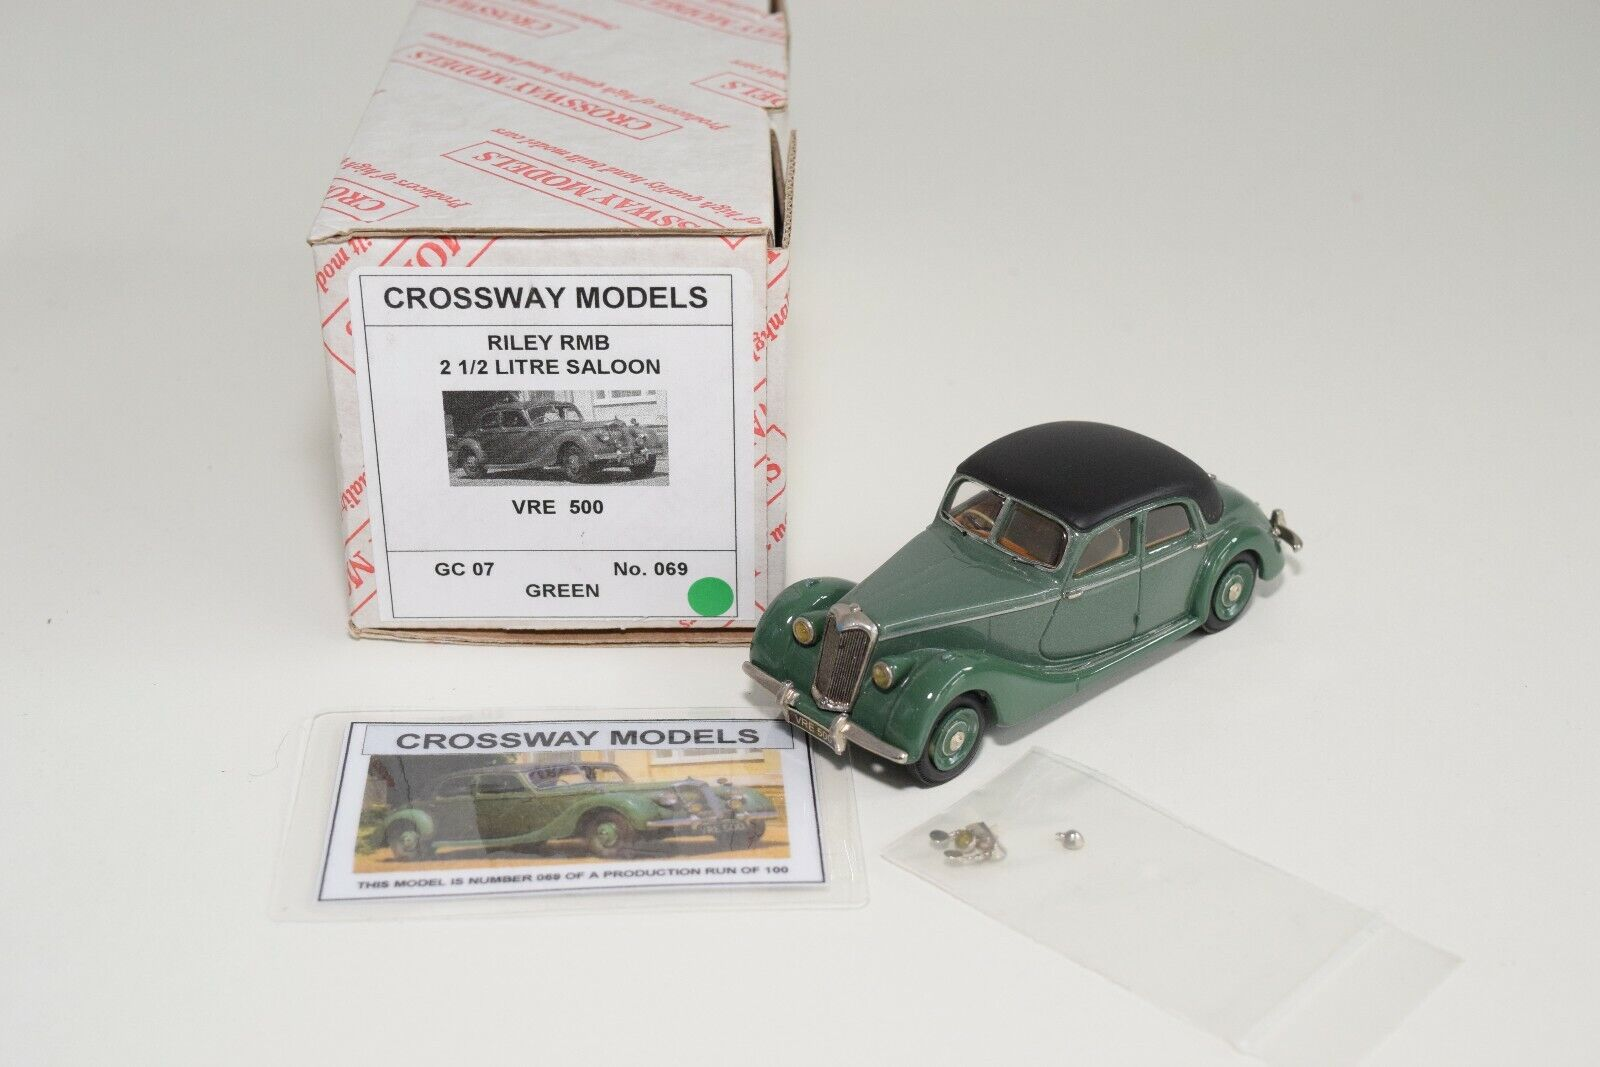 FF 1 43 CROSSWAY MODELS GC07 RILEY RMB 2 1 2 LITRE SALOON verde MIB 69 100 RARE